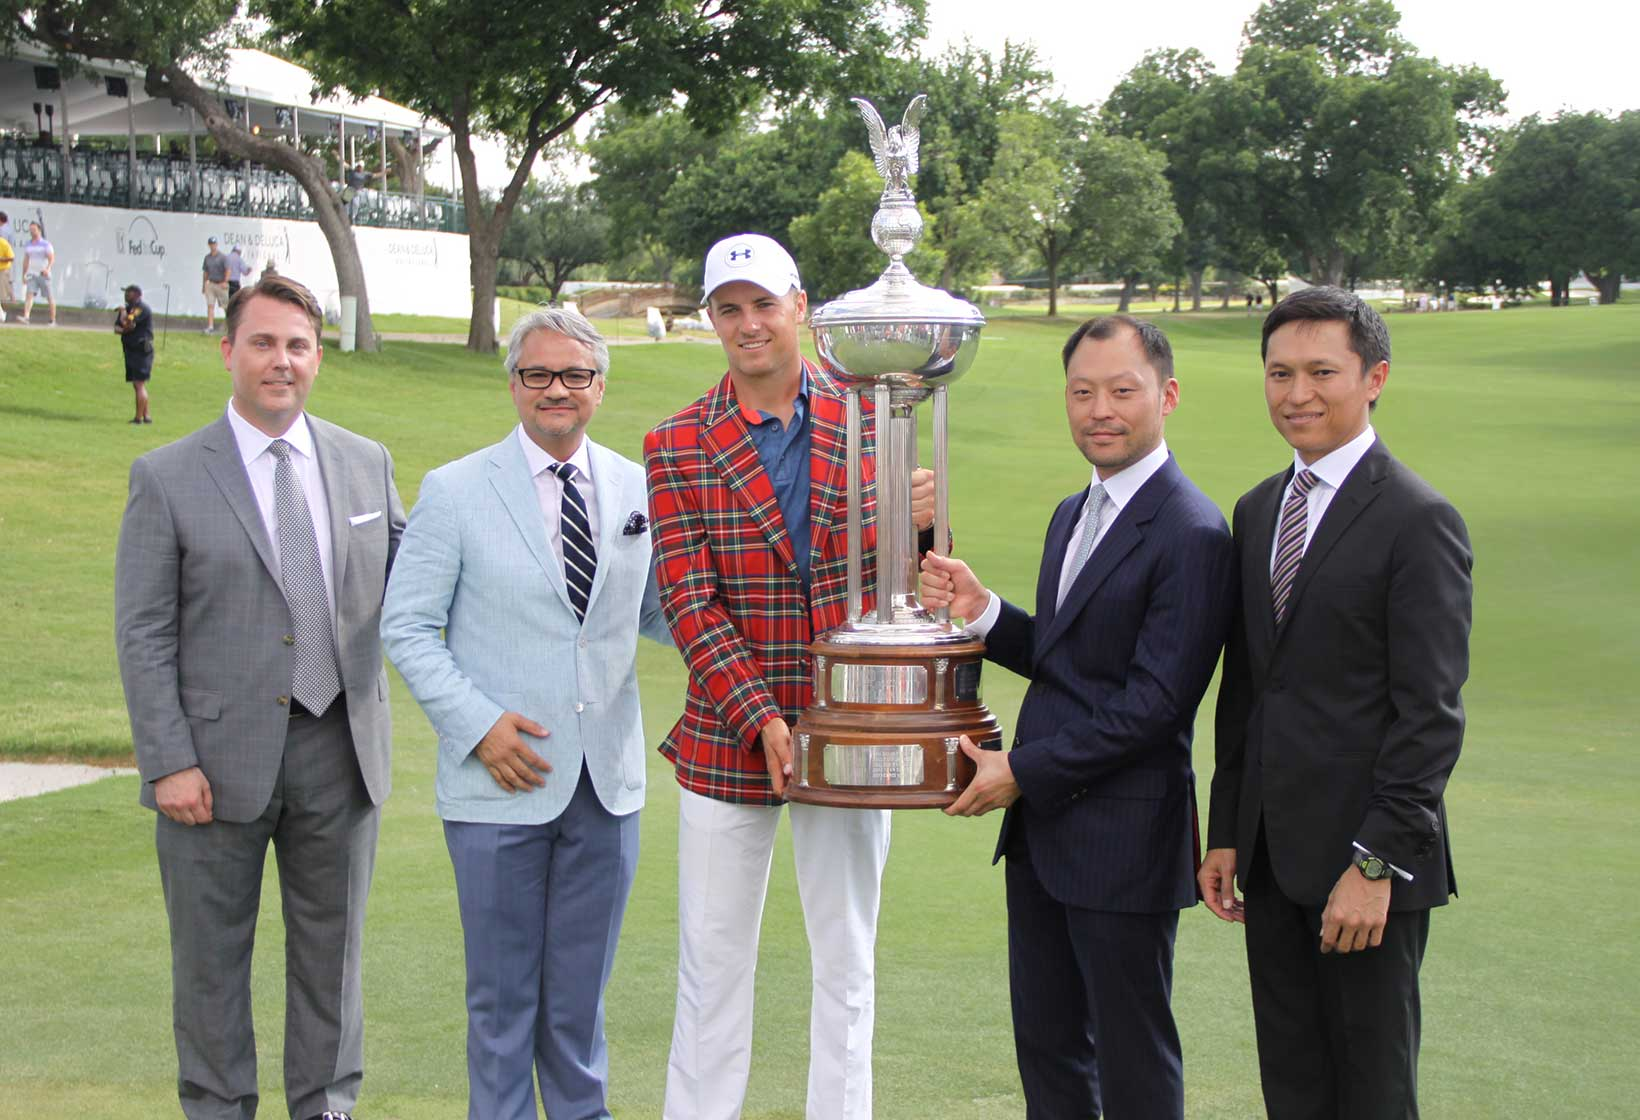 2016 Dean & Deluca Invitational: Jordan With Dean & DeLuca and Pace Development